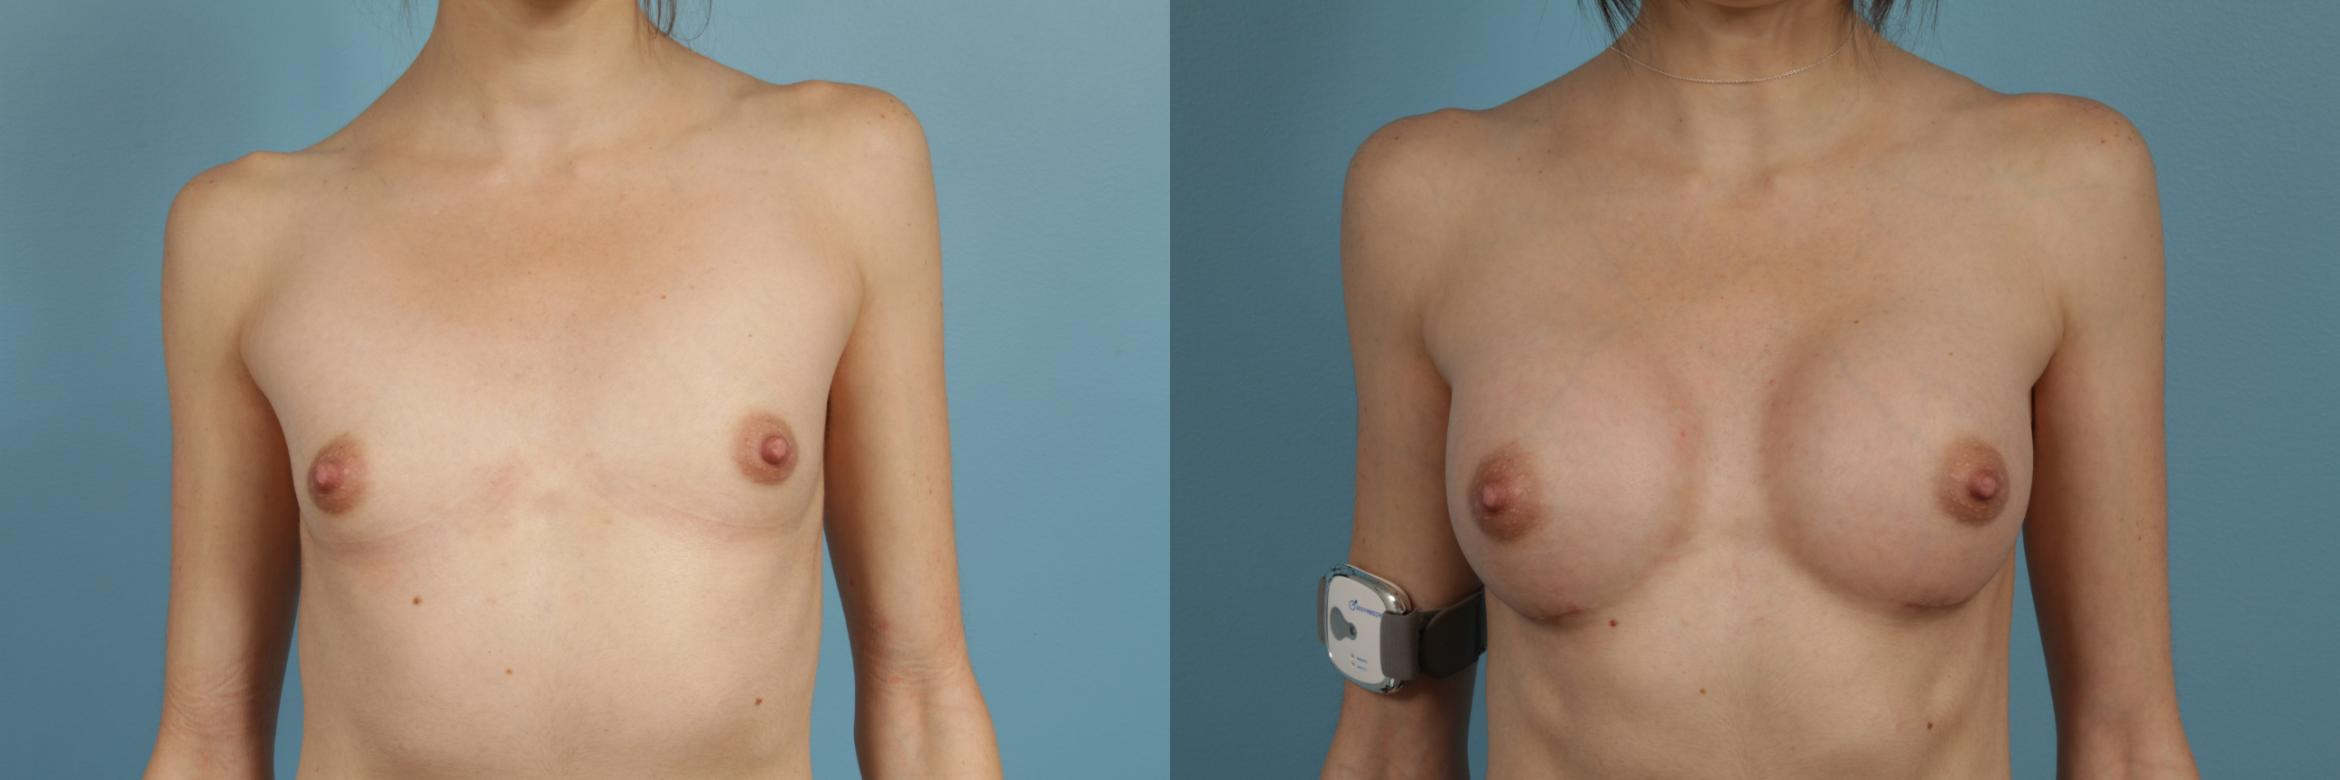 Breast Augmentation Case 270 Before & After View #1 | Chicago, IL | TLKM Plastic Surgery